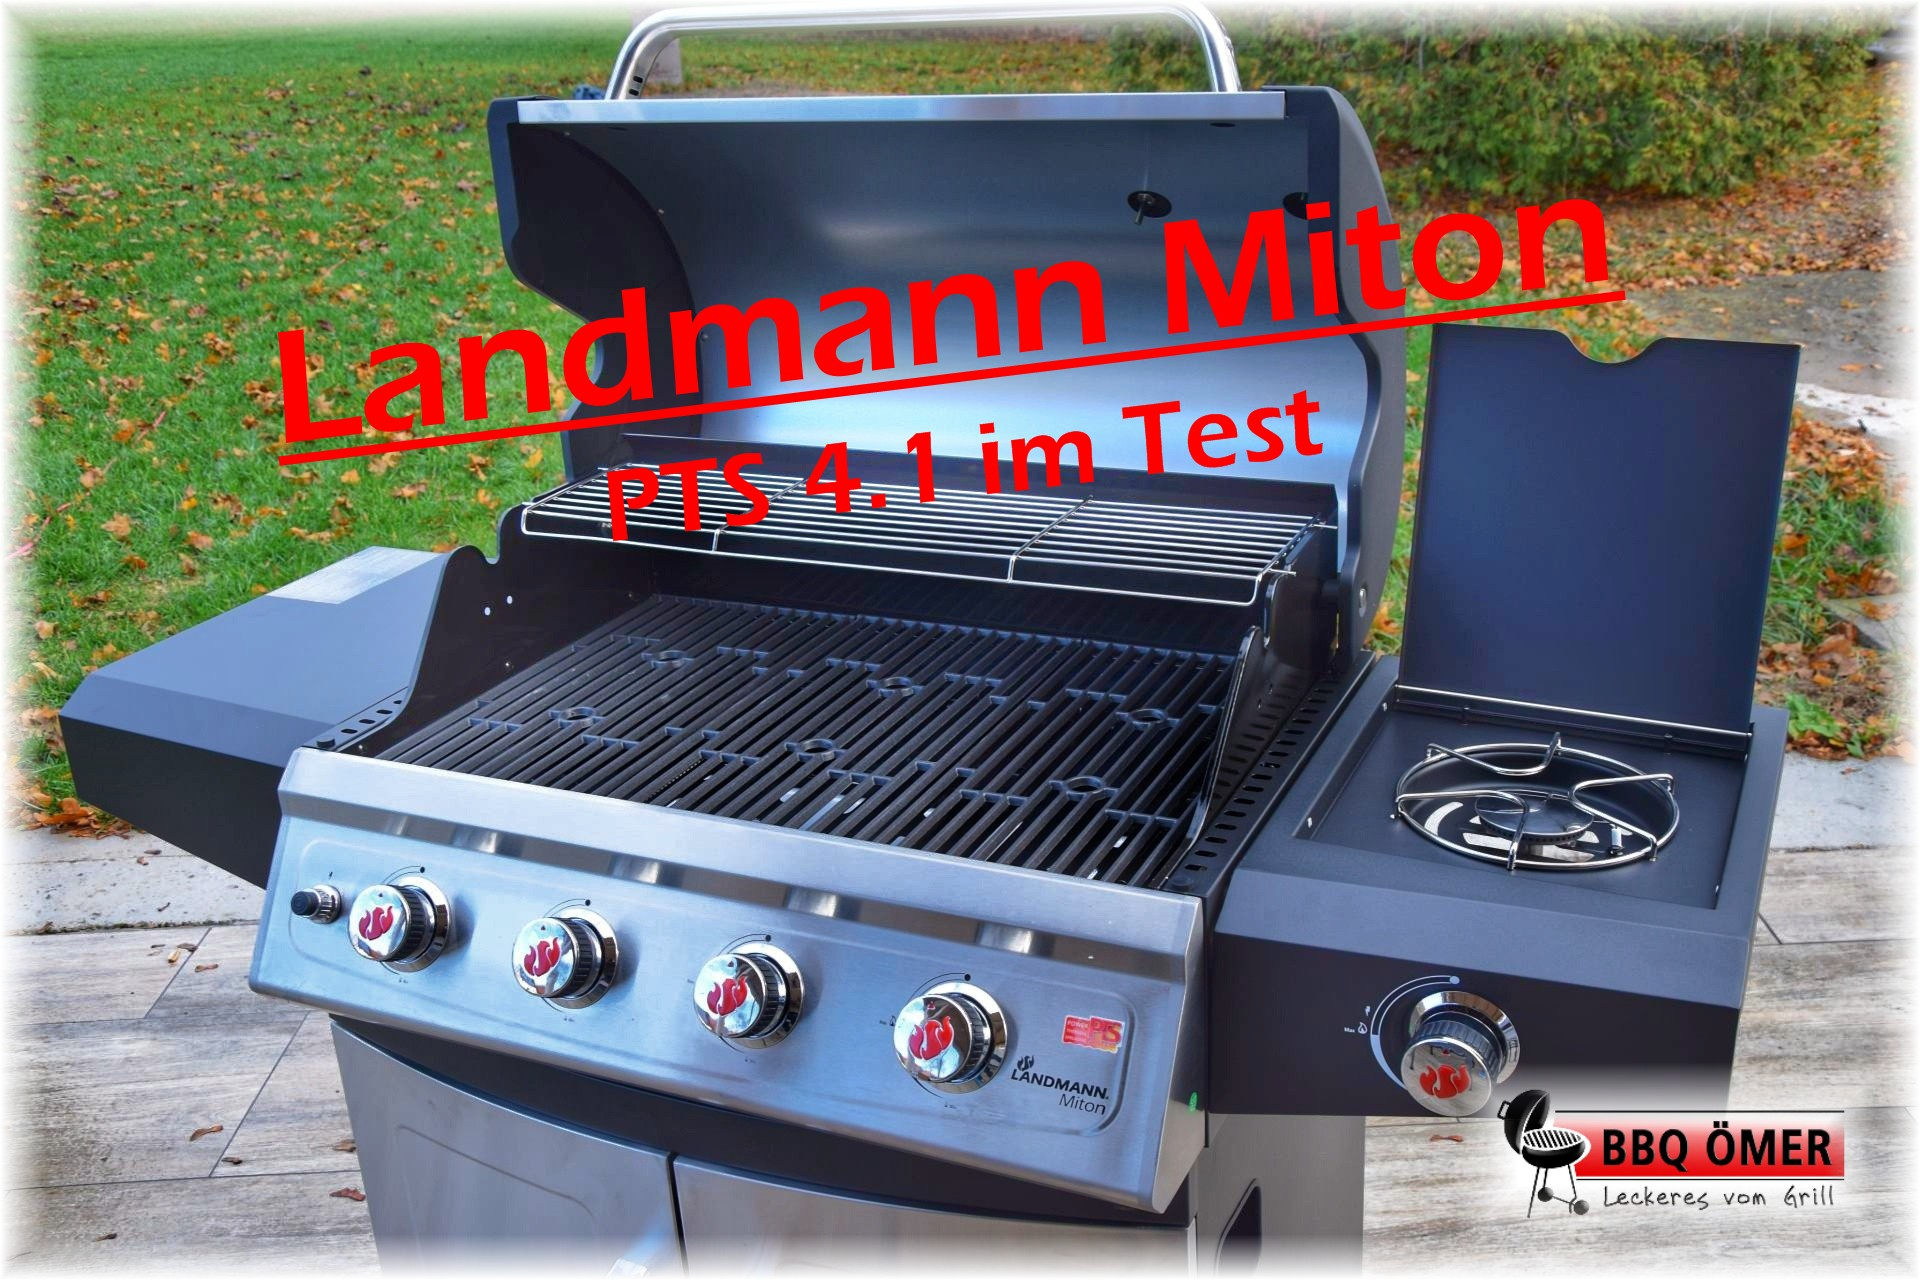 Landmann Gasgrill Deckel : Landmann miton pts 4.1 im test the american way bbq Ömer